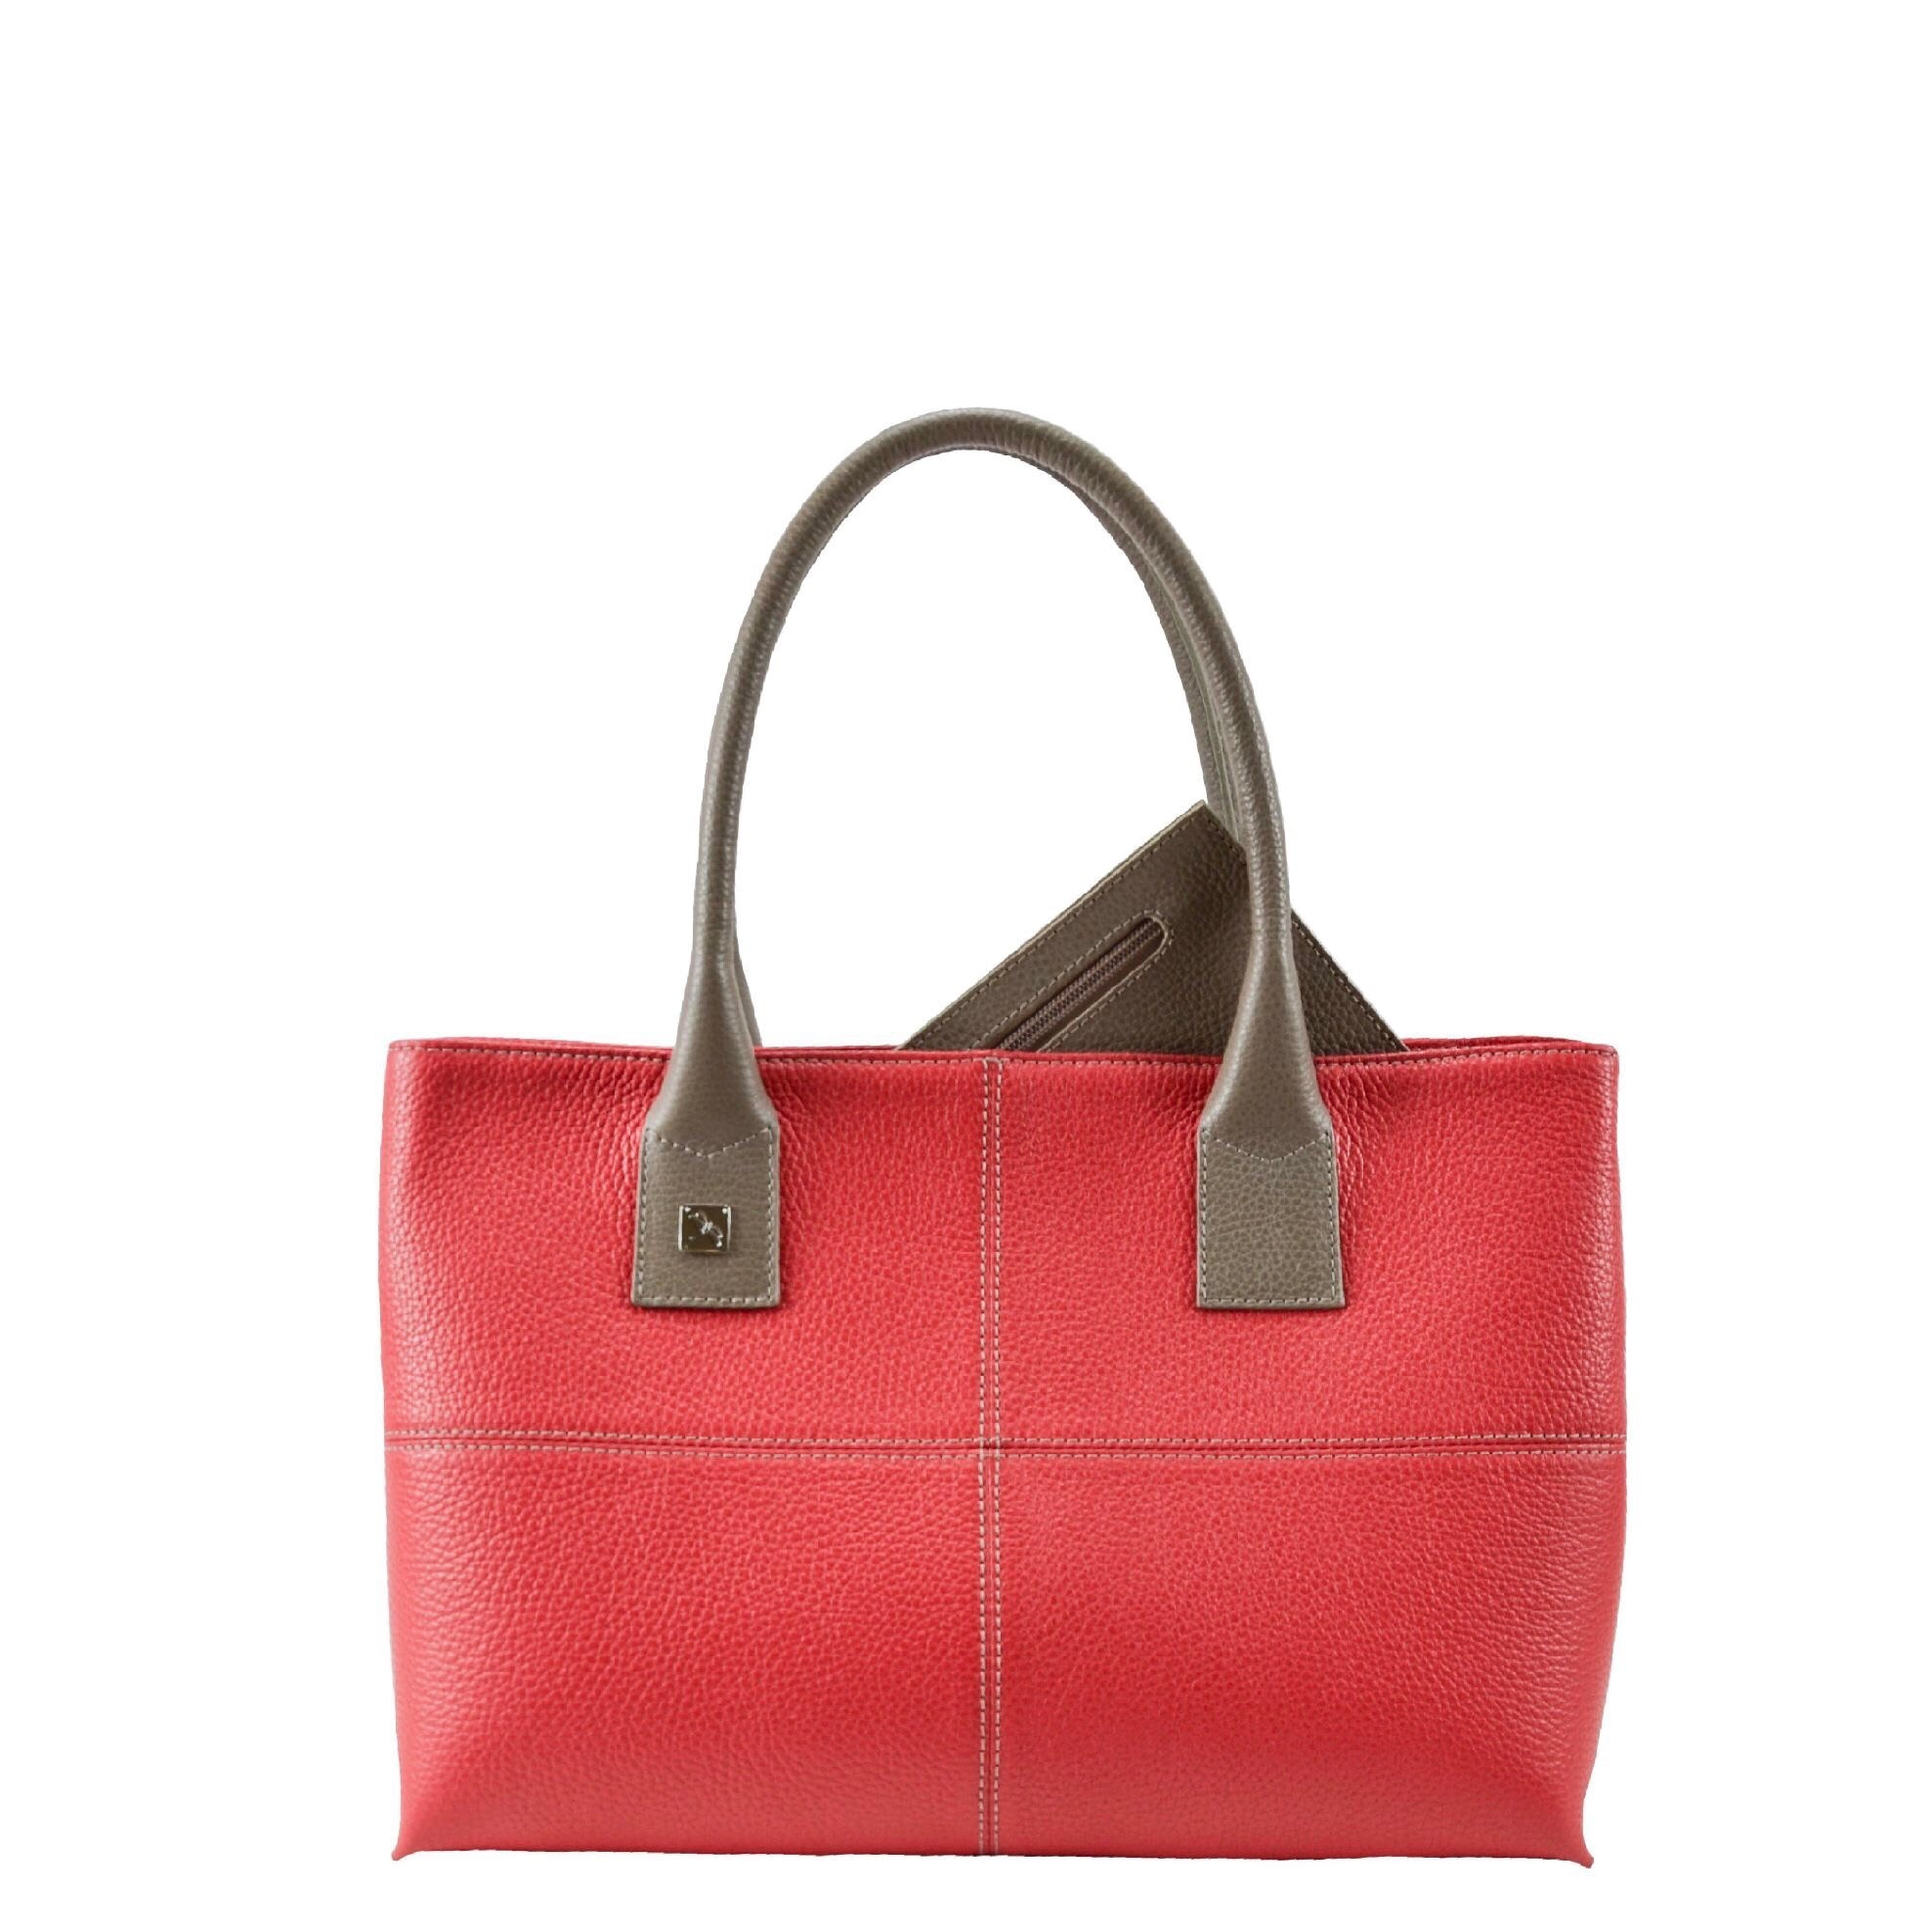 Natalia S Red and Taupe Tote